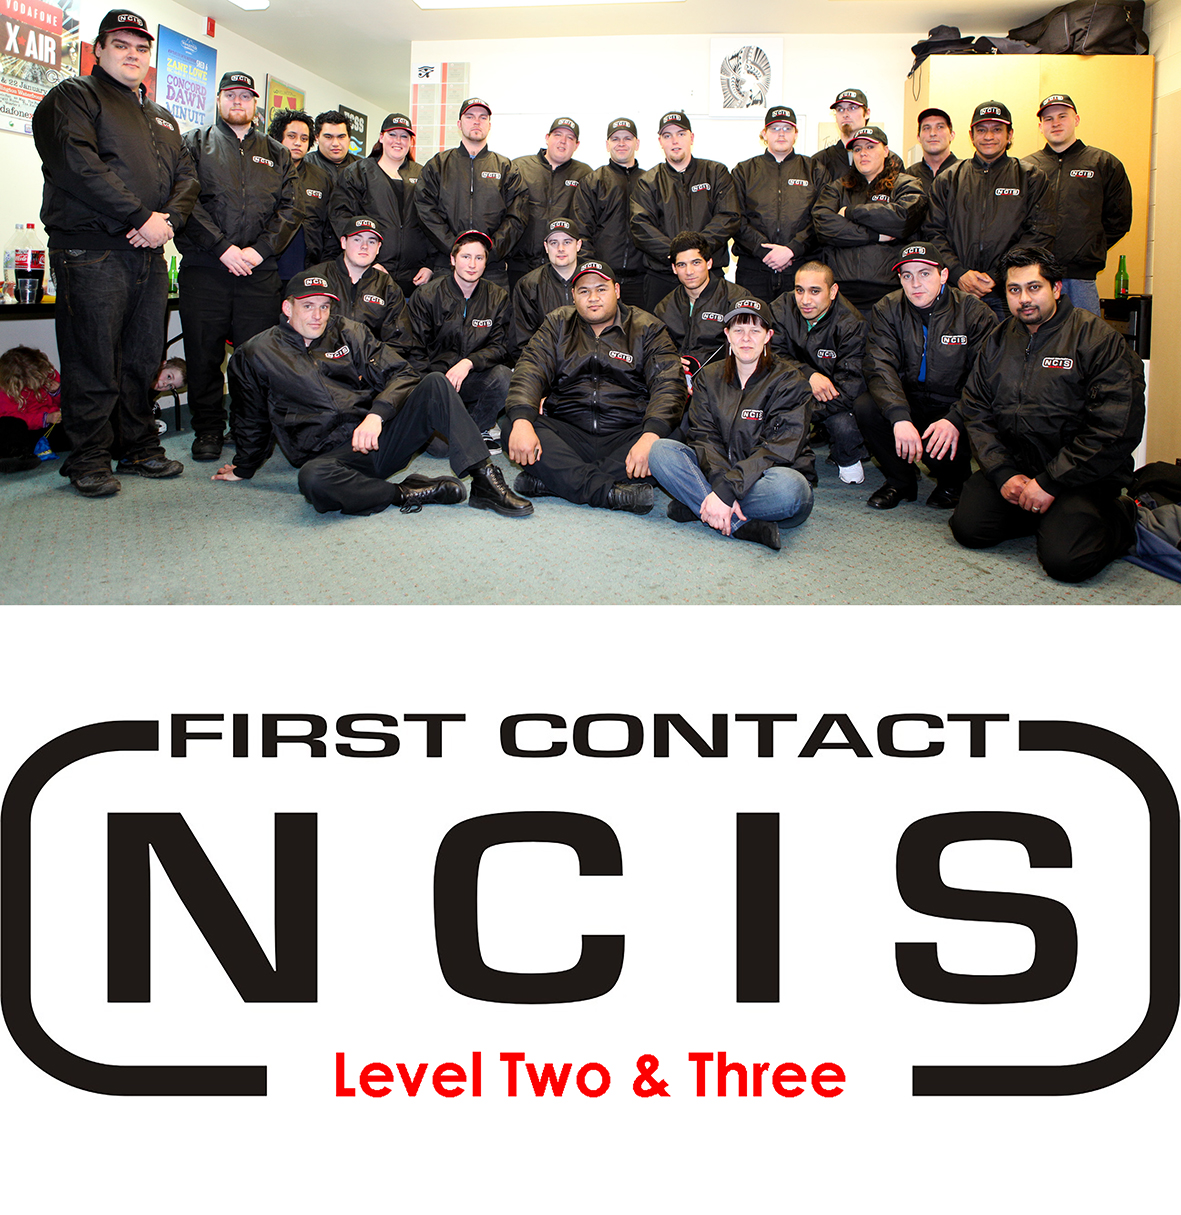 Recognising Effort - Our staff work hard to achieve their qualifications, as such, we like to make a big deal of it.Our Level 3 graduates receiving their National Certificate In Security (NCIS) caps and jackets